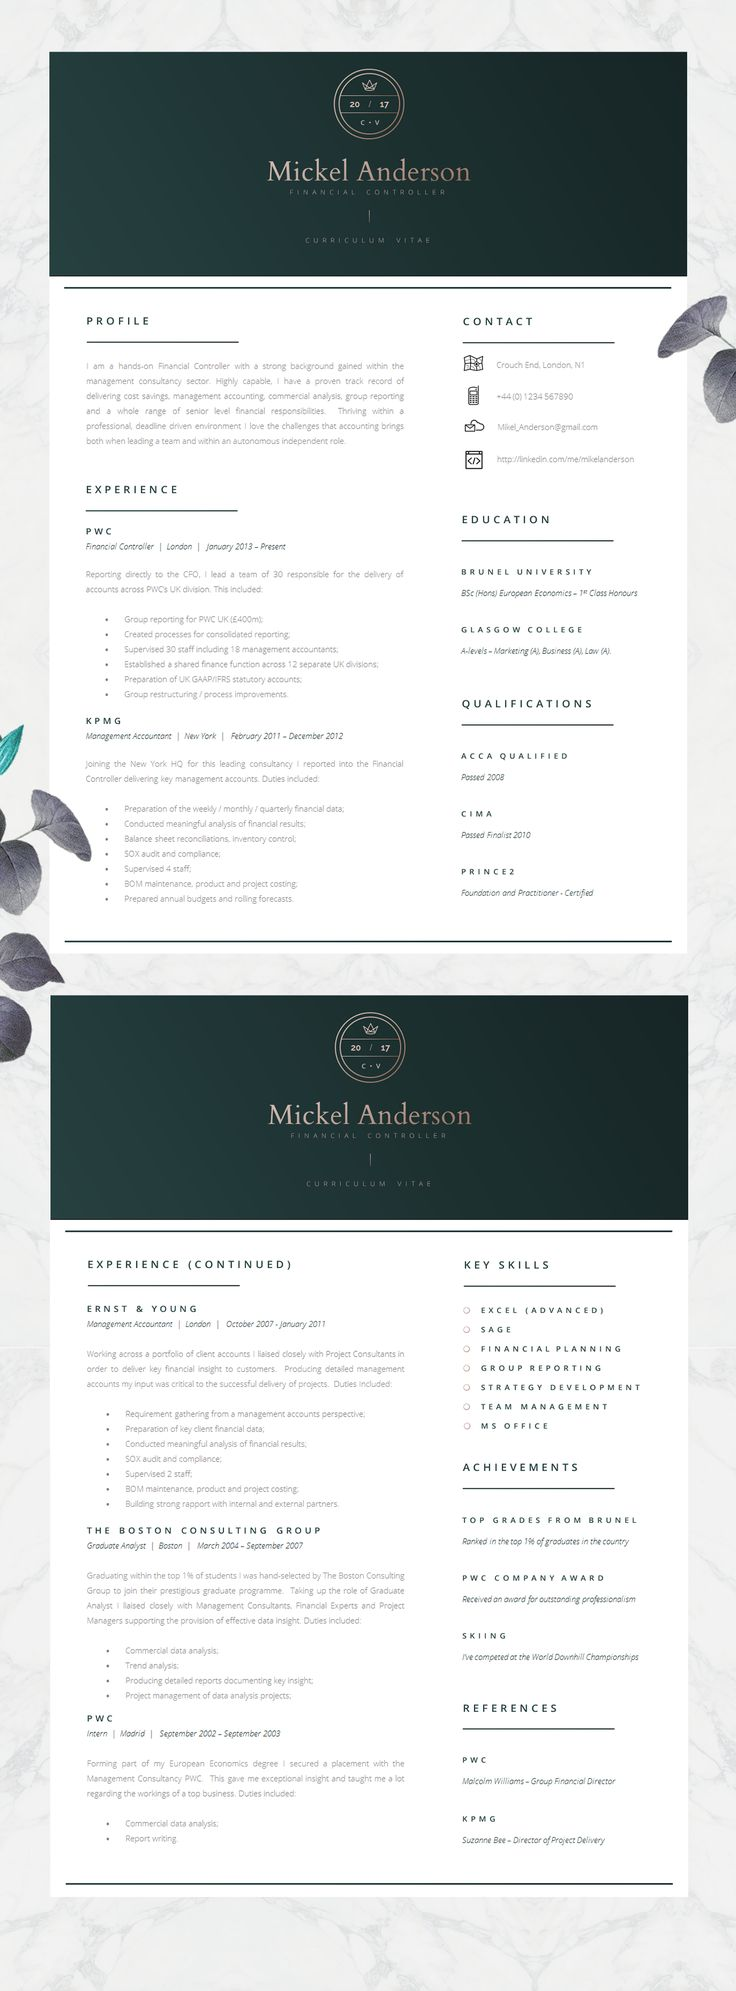 Professional CV Template Two Page Resume